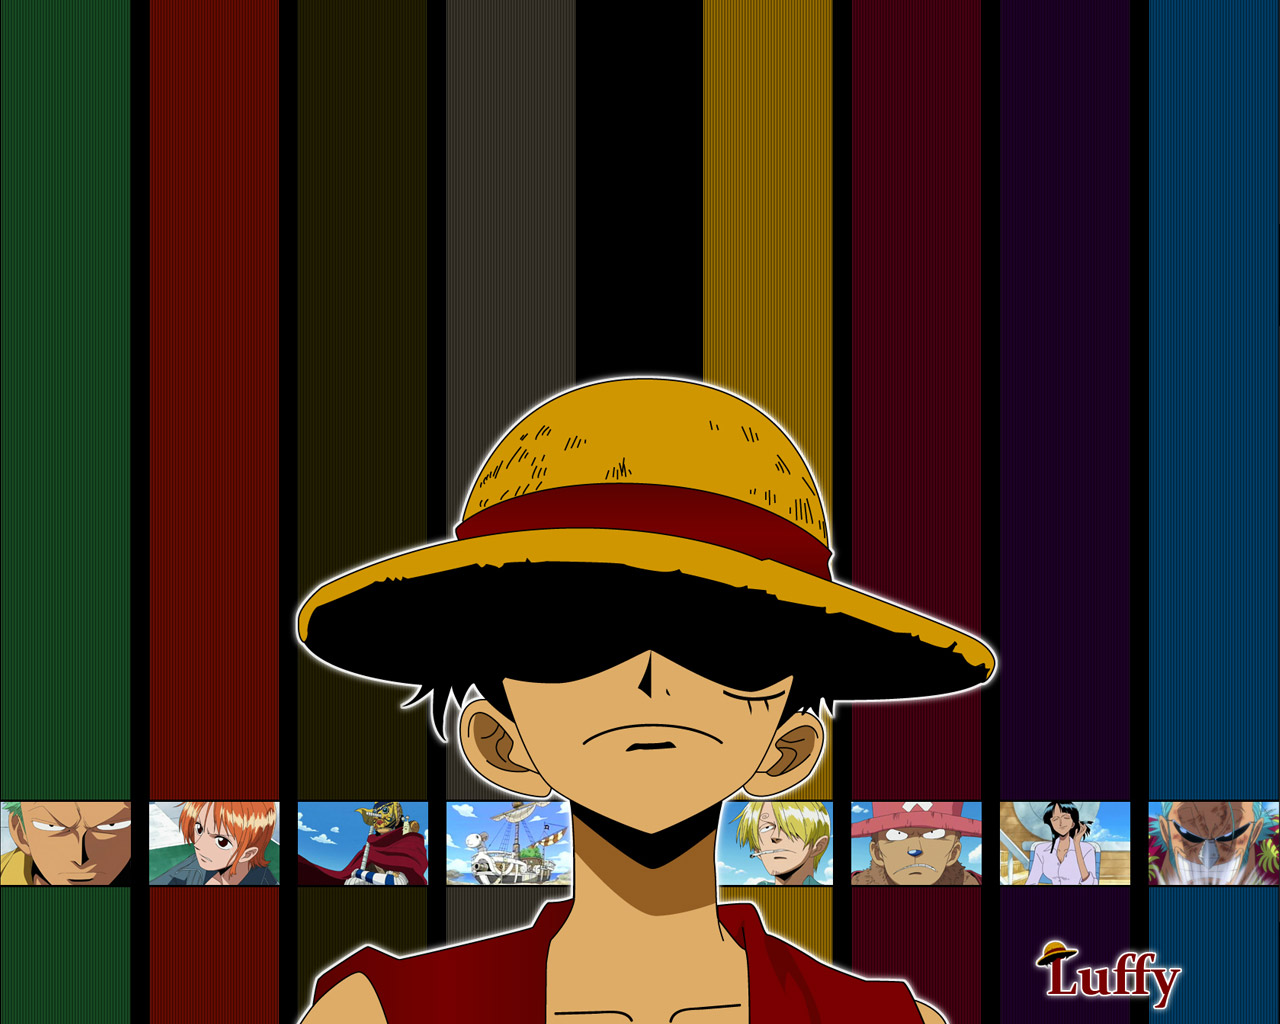 luffy angry one piece aokiji user galleries anime wallpapers